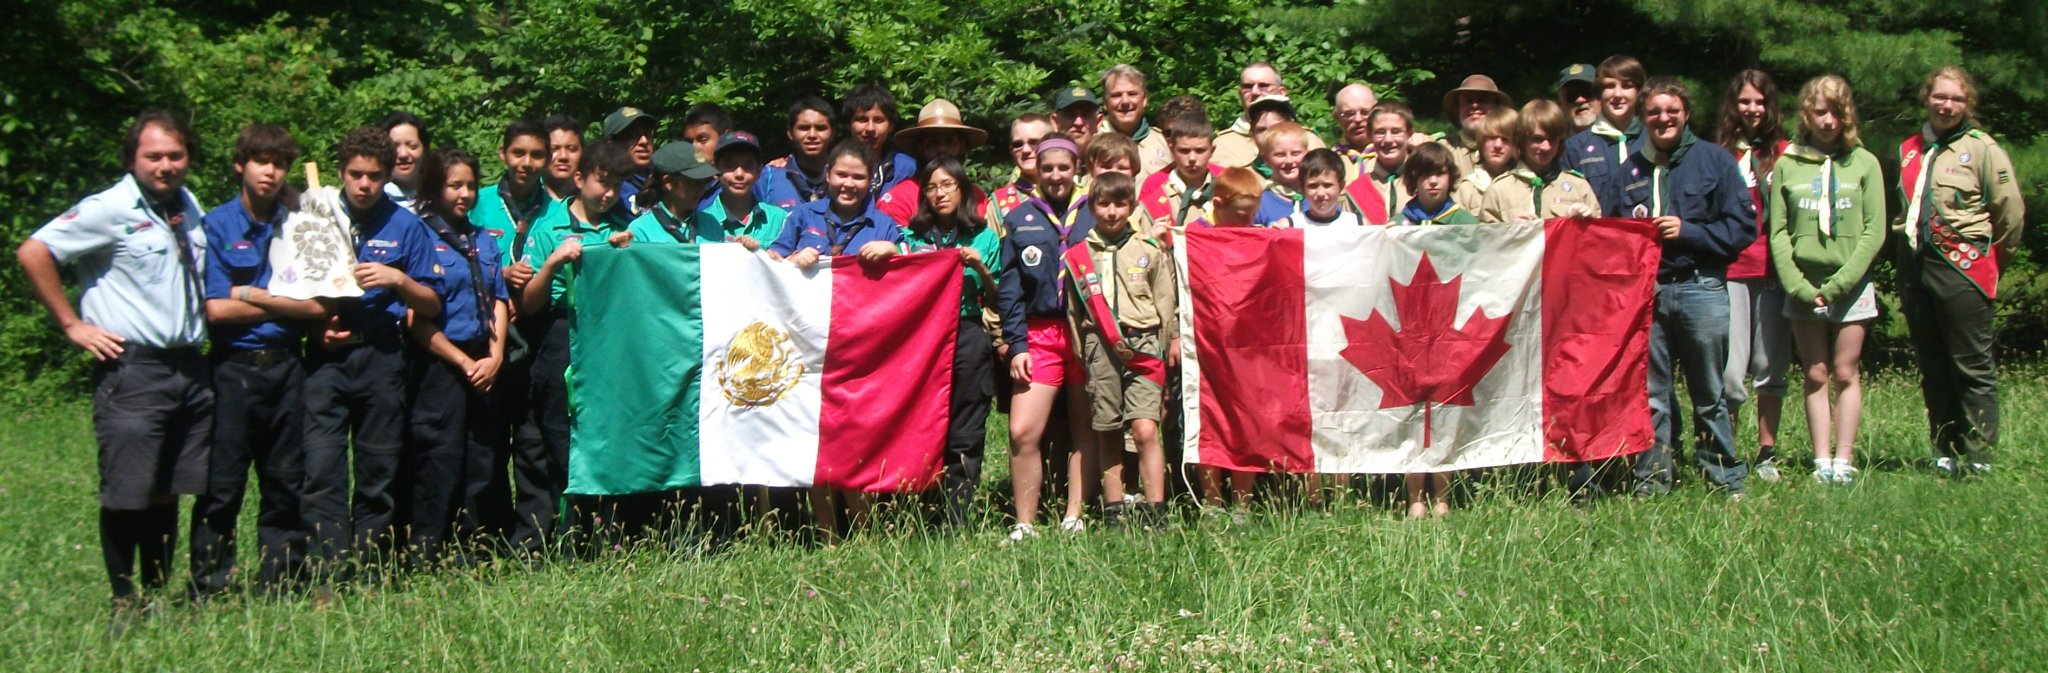 St. Luke's 2nd Peterborough Scouting Group Photo (2013)